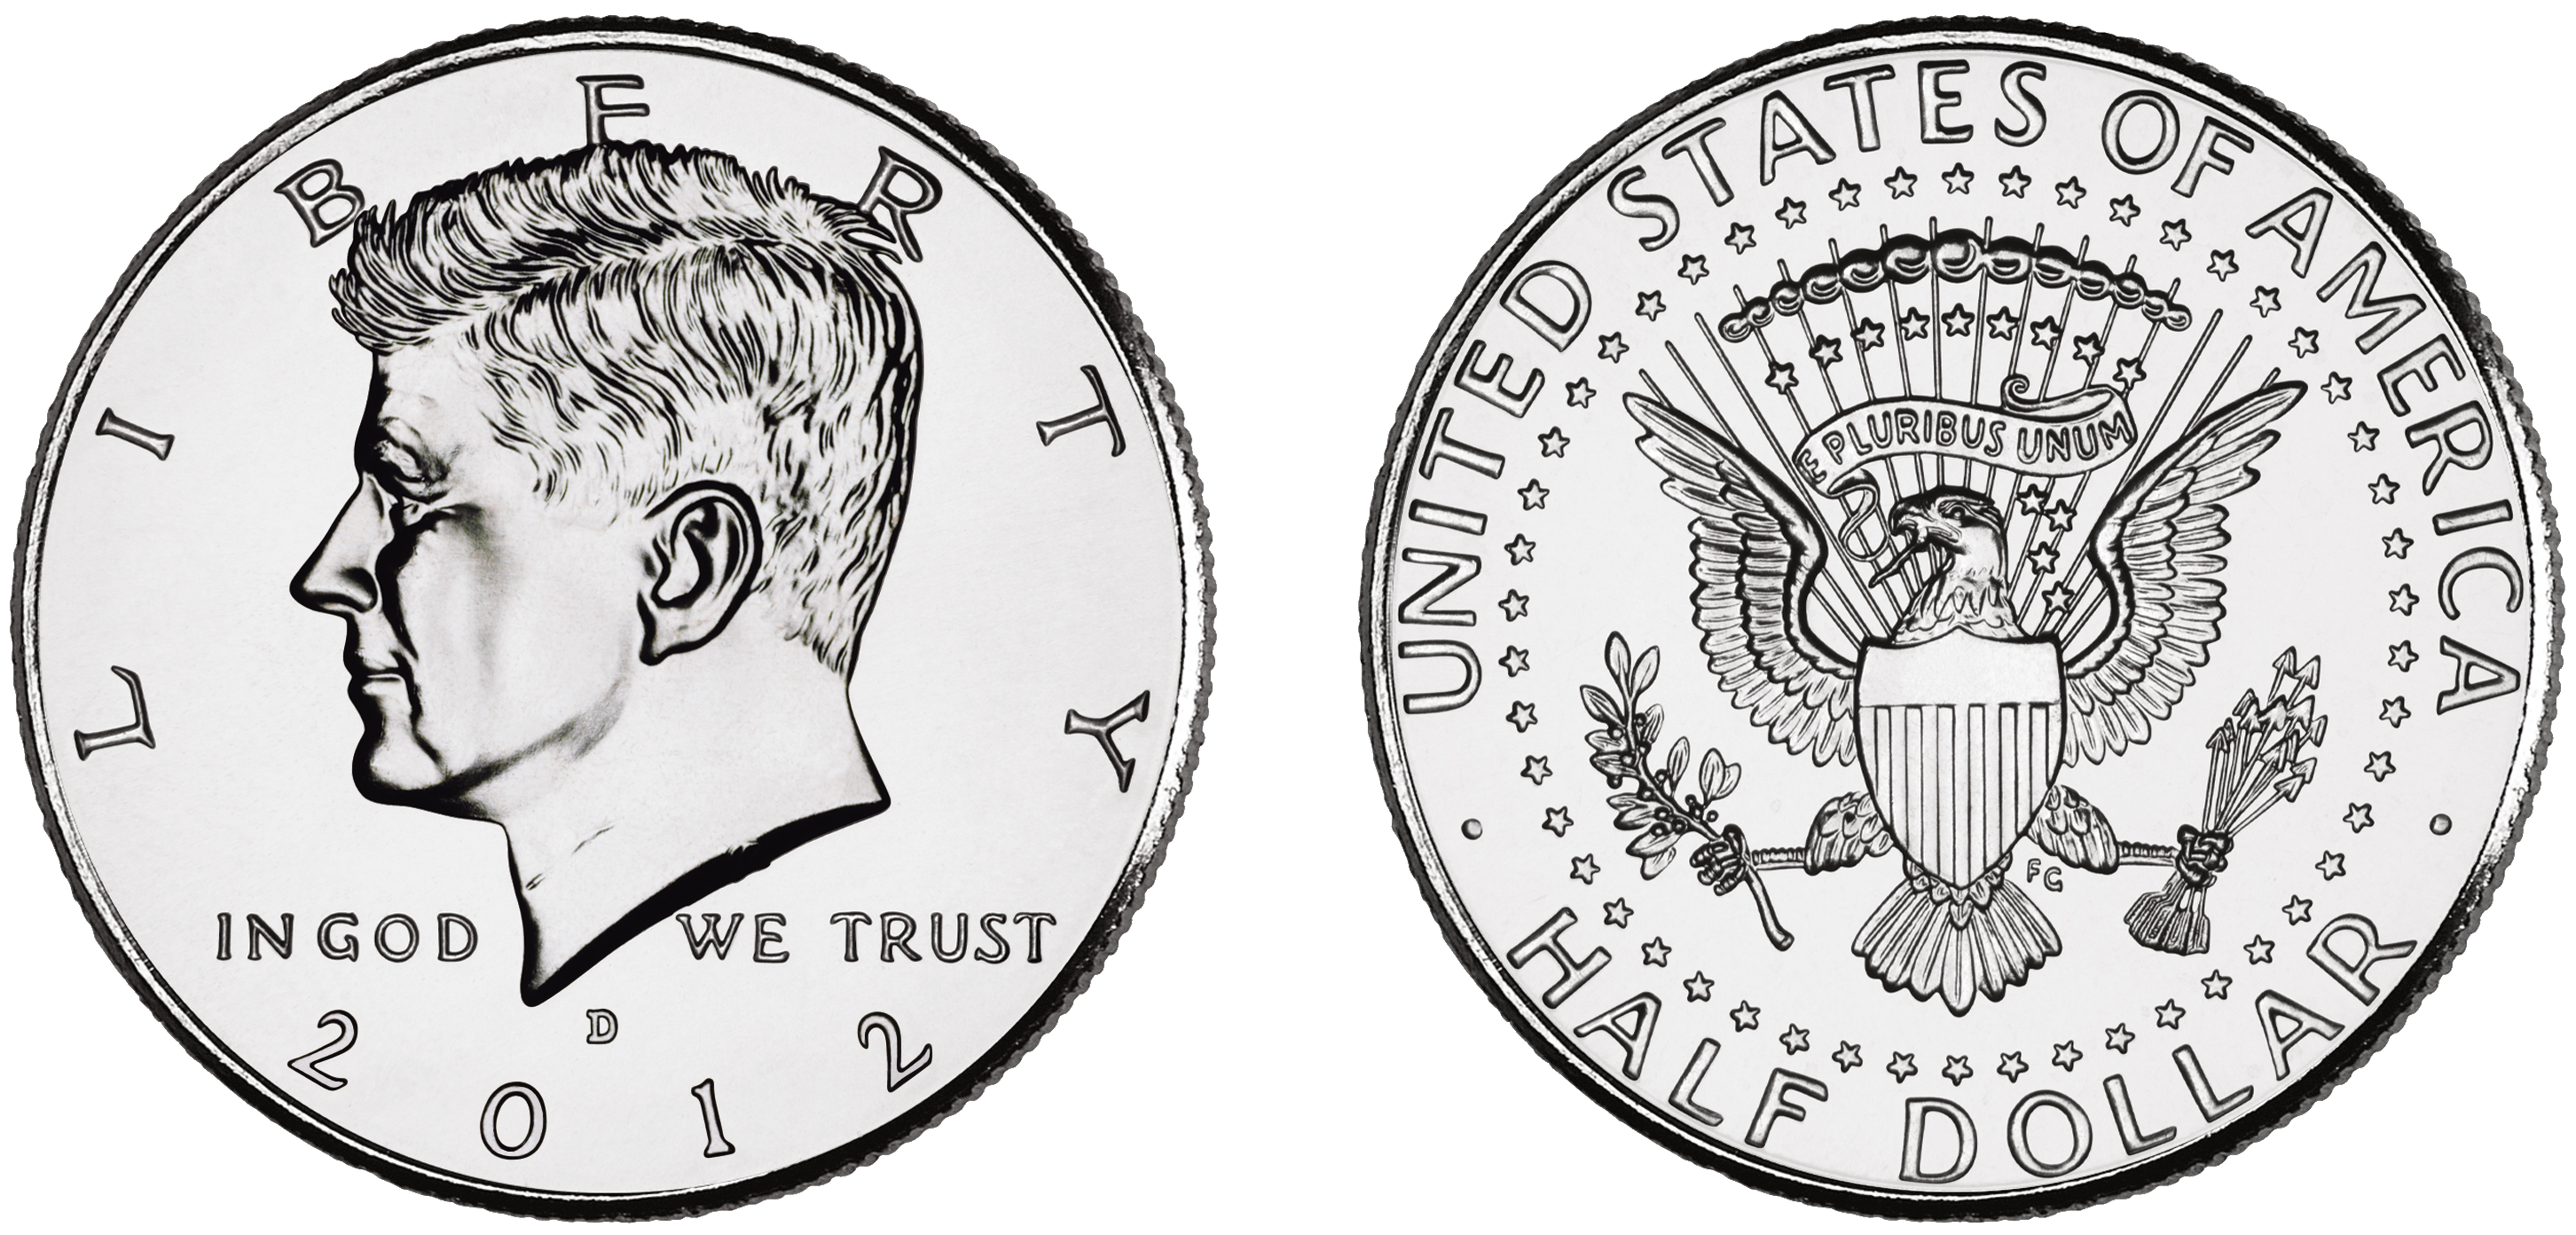 Money change clipart black and white free stock Kennedy Half Dollars | Isolated Stock Photo by noBACKS.com free stock